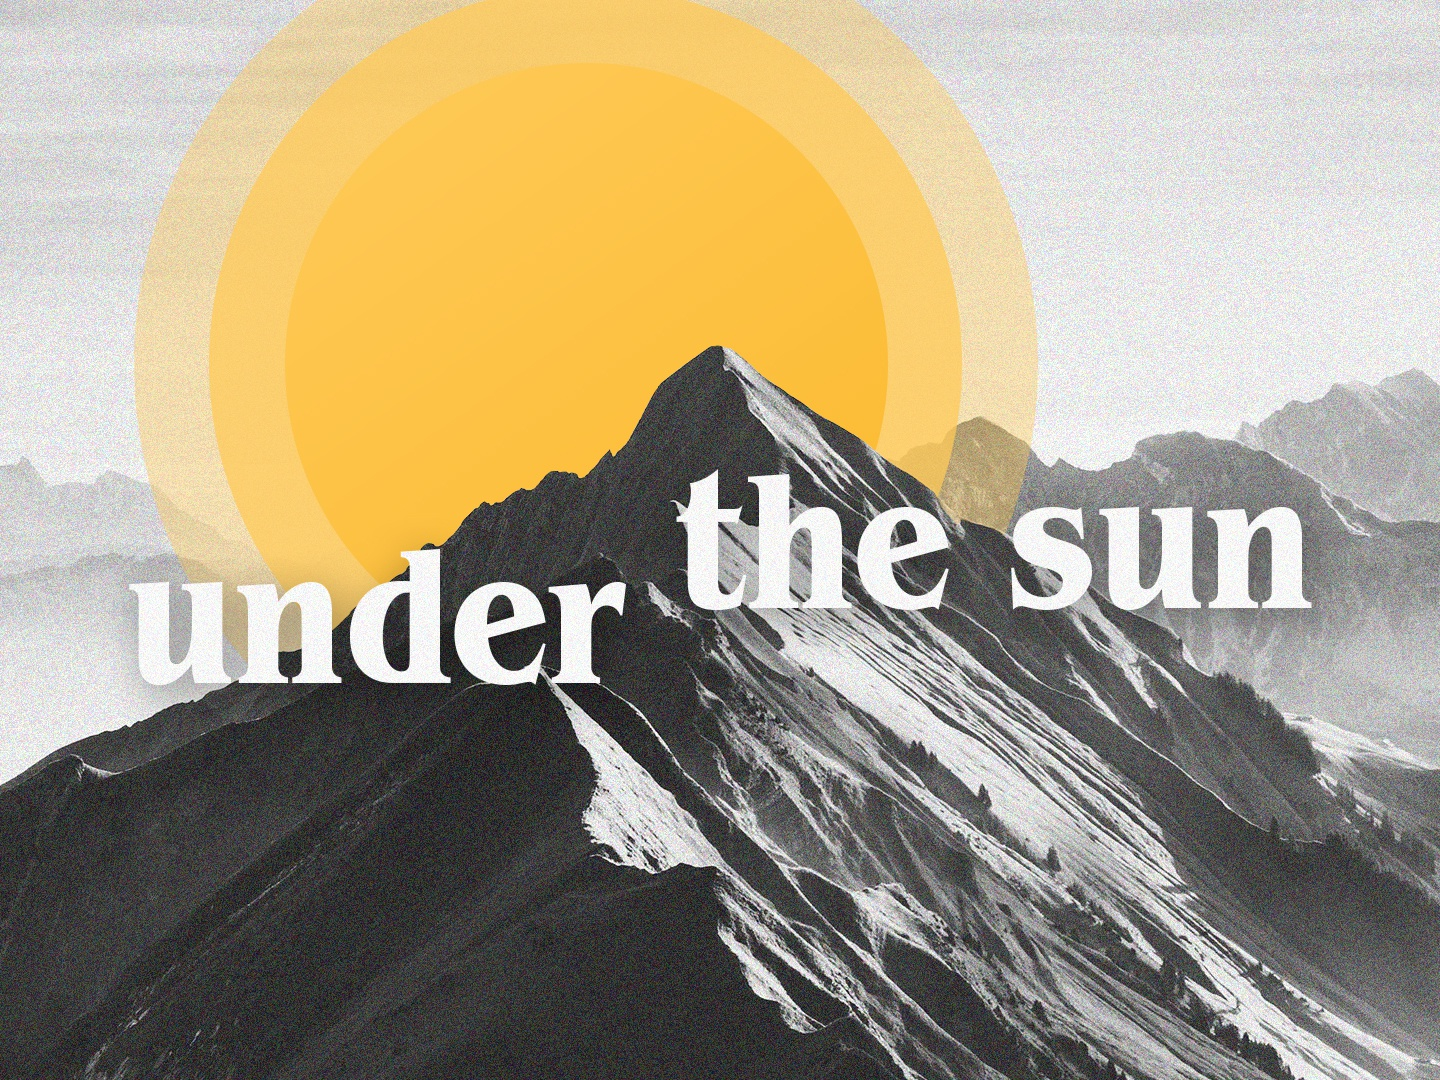 Under The Sun (Concept) sun mountain series branding crtvmin crtvchurch church